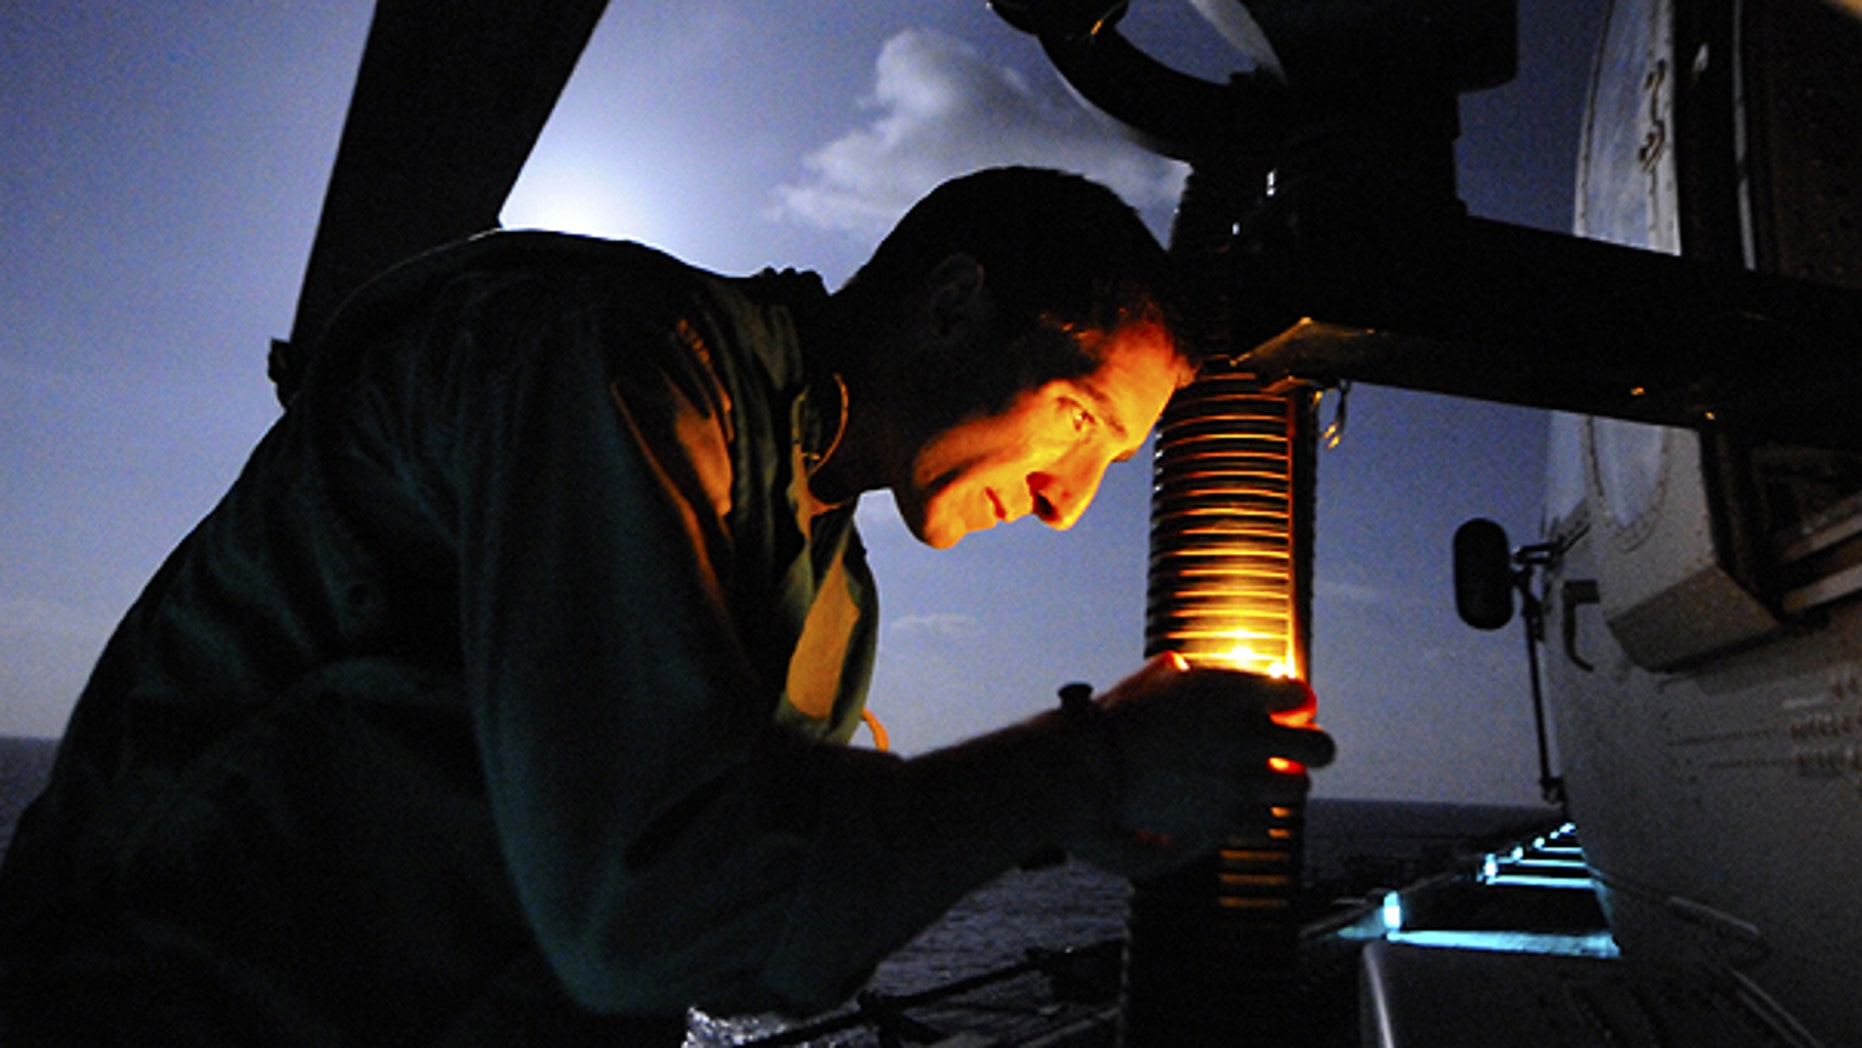 March 19: In this photo provided by the U.S. Navy, Naval Air Crewman 2nd Class Jordan Orr, assigned to Helicopter Sea Combat Squadron 22, checks the mount for a GAL-21 machine gun on a Sea Hawk helicopter on the flight deck of amphibious assault ship USS Kearsarge in preparation for operations against Libya in the Mediterranean Sea.